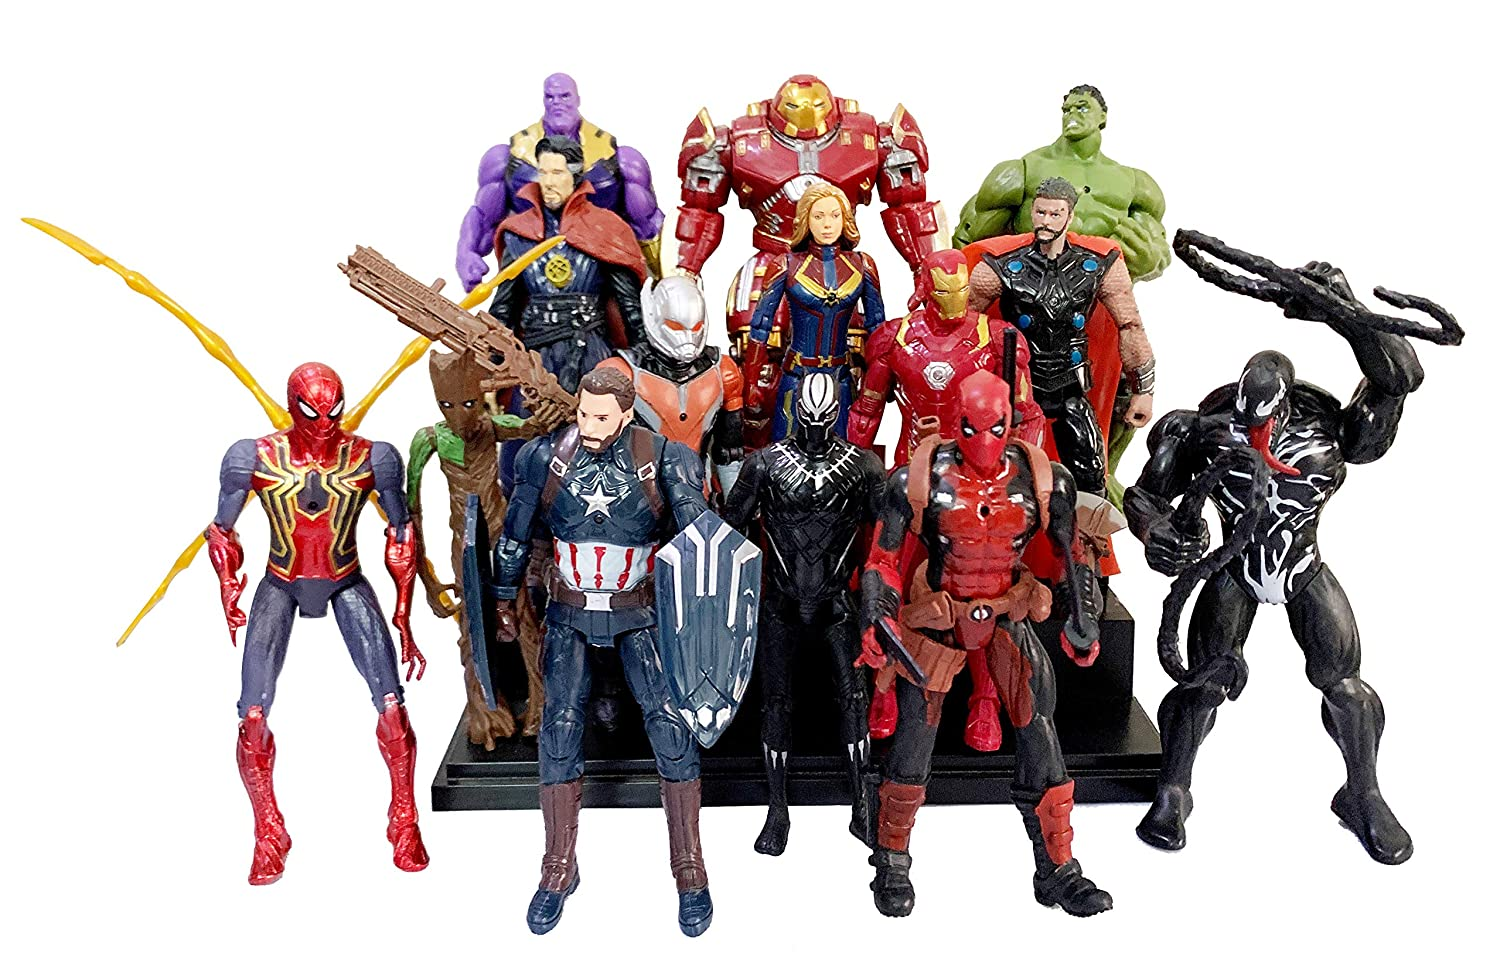 Marvel Thanos Avengers Iron Man Thor Doctor Strange Hulk Captain America Groot